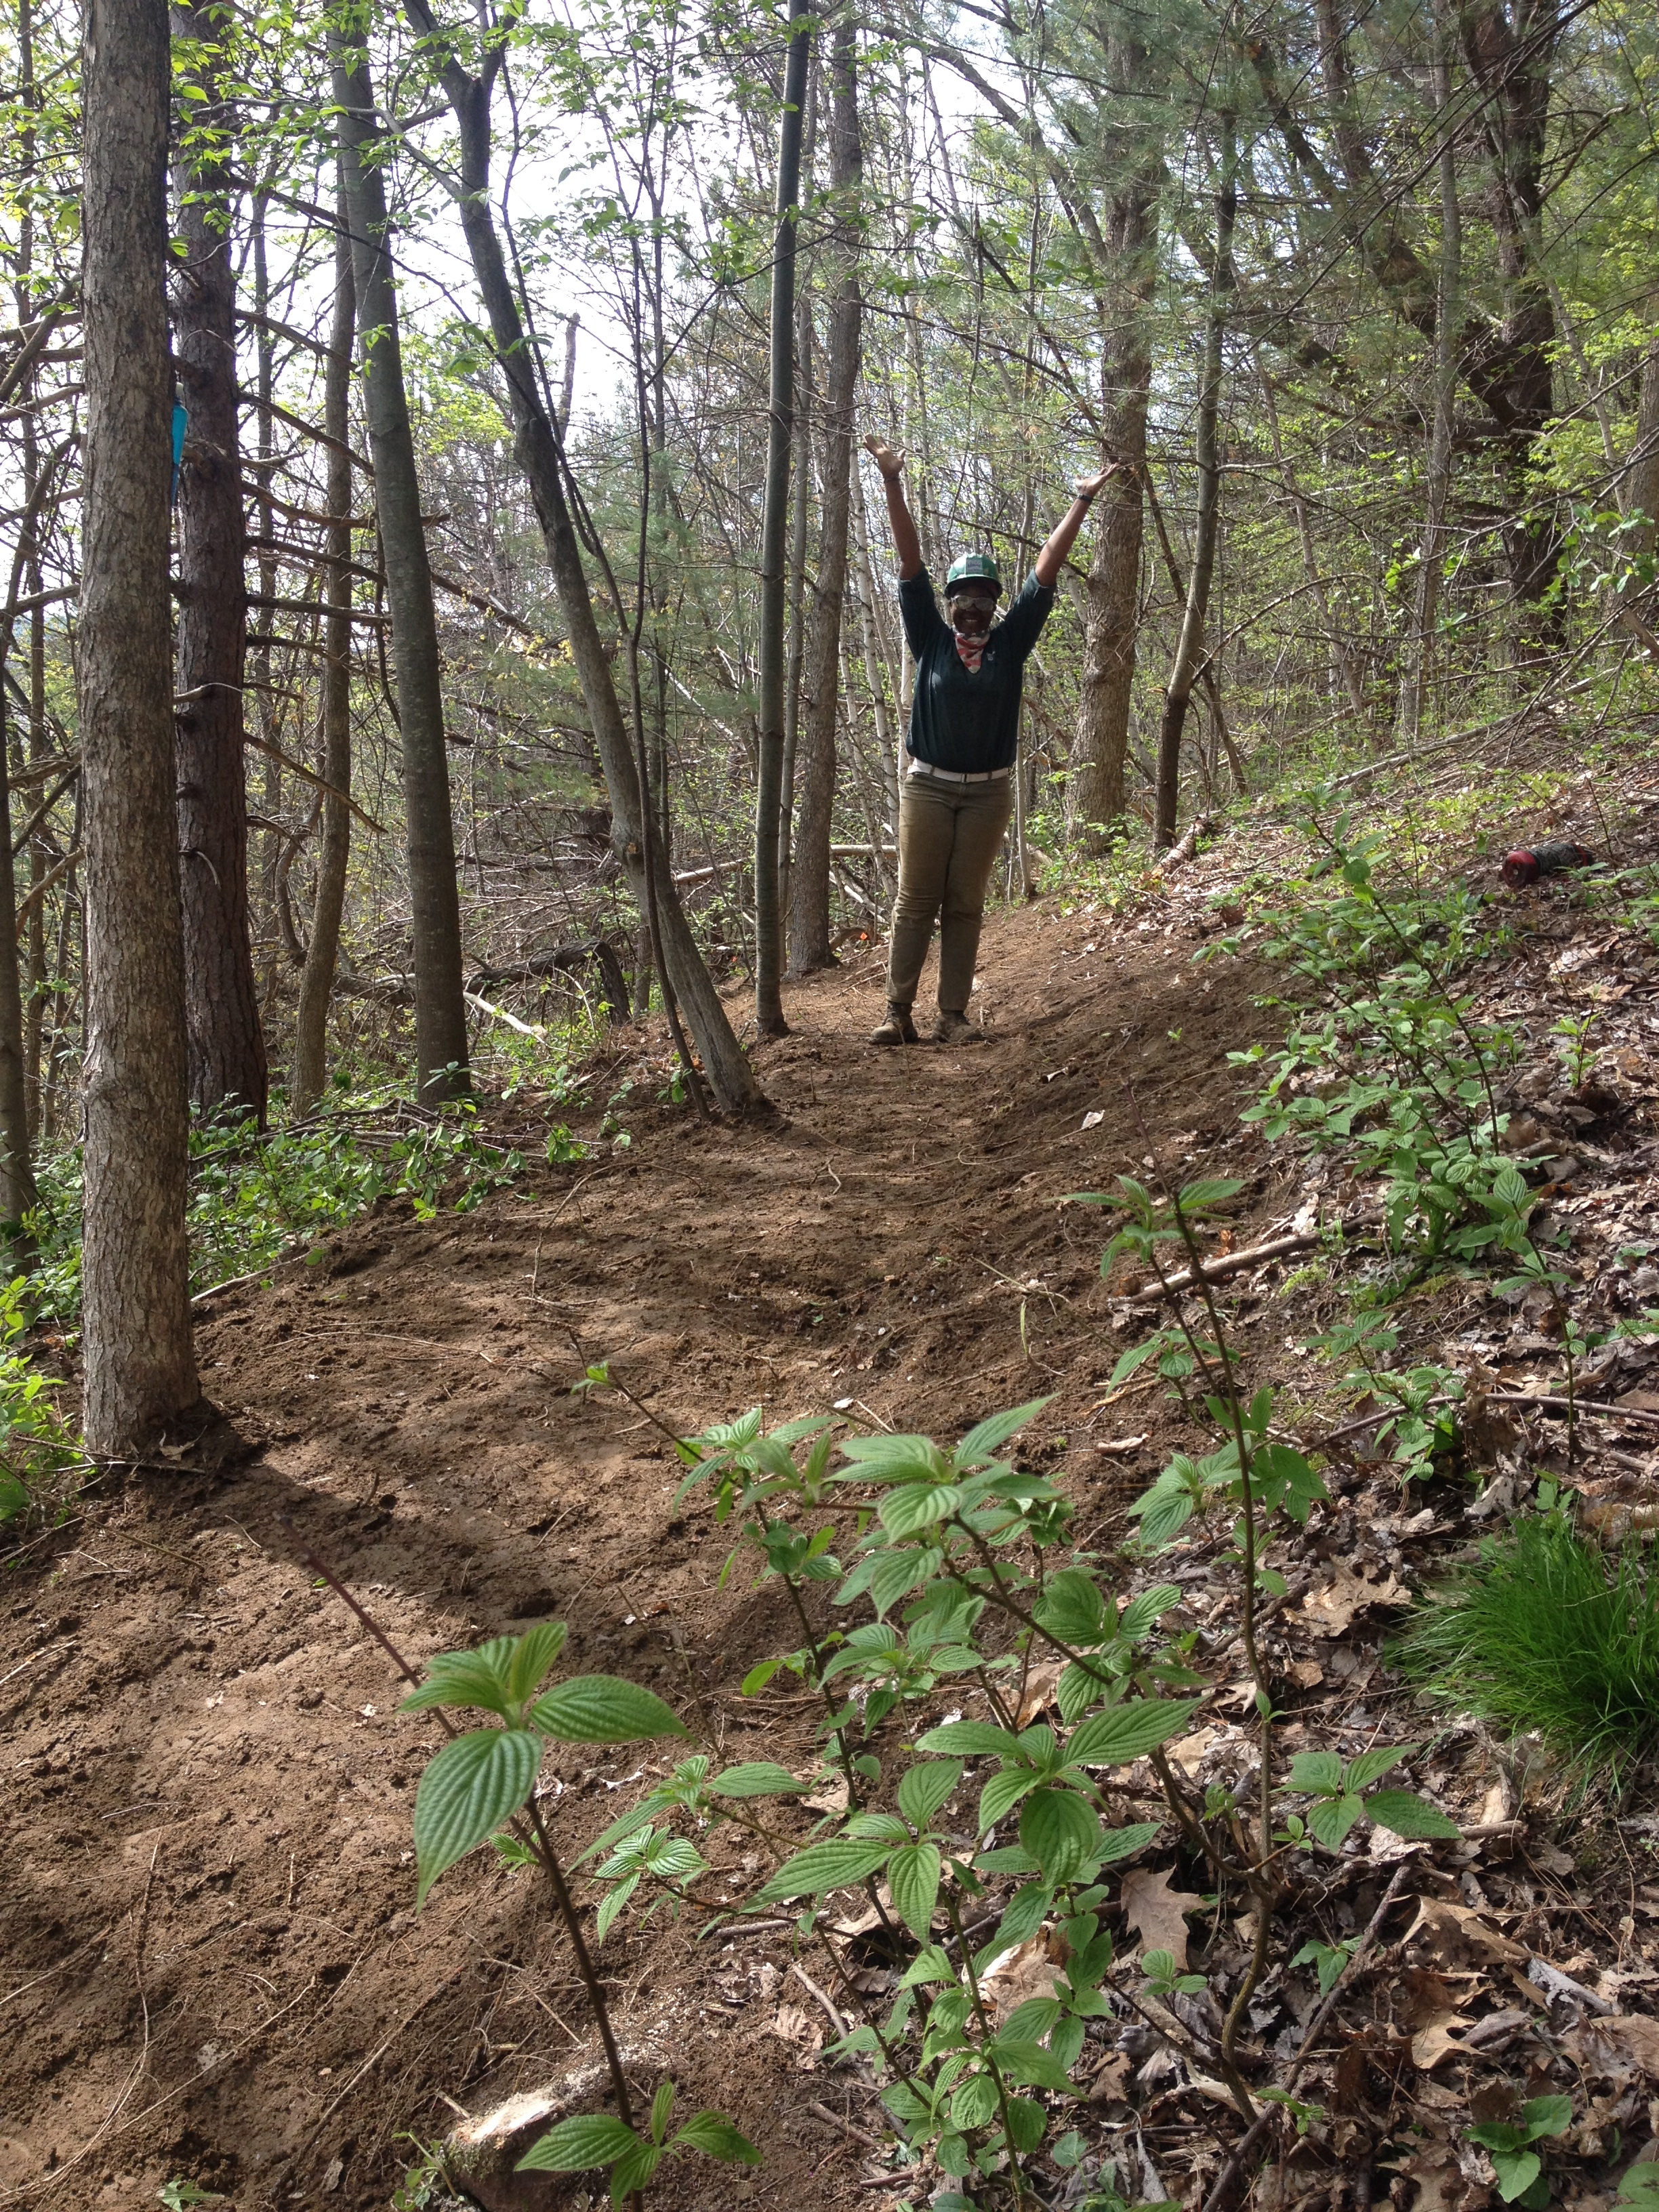 Katheryne Lewis on freshly benched trail at Vermont Youth Conservation Corps in Richmond, Vermont.